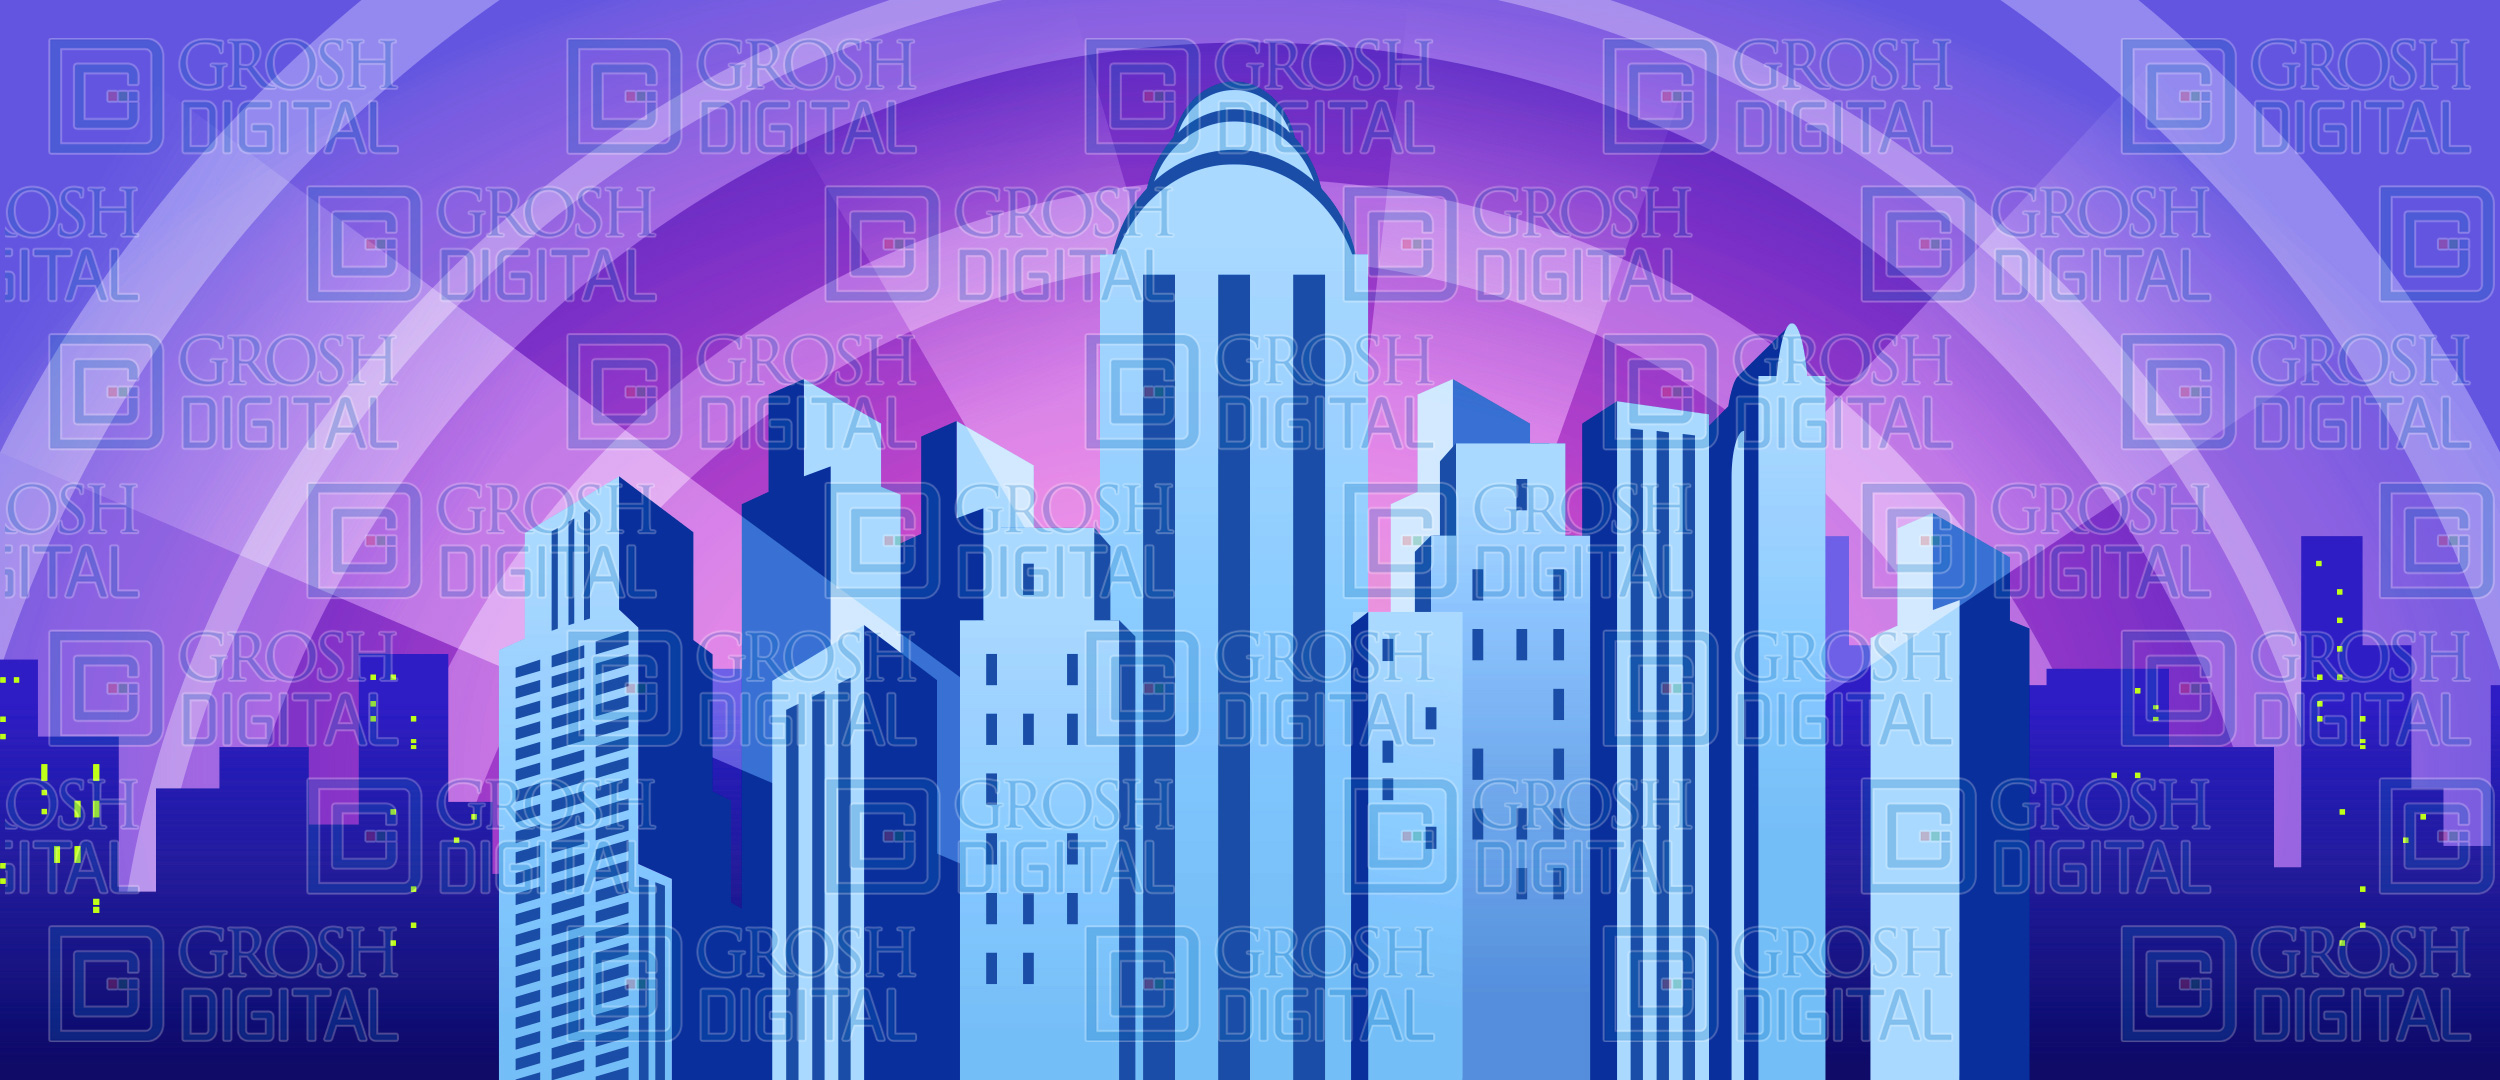 Blue Art Deco City Projected Backdrop for Big Fish, Broadway/New York, Hollywood, How to Succeed in Business, Madagascar, Skylines, Thoroughly Modern Millie